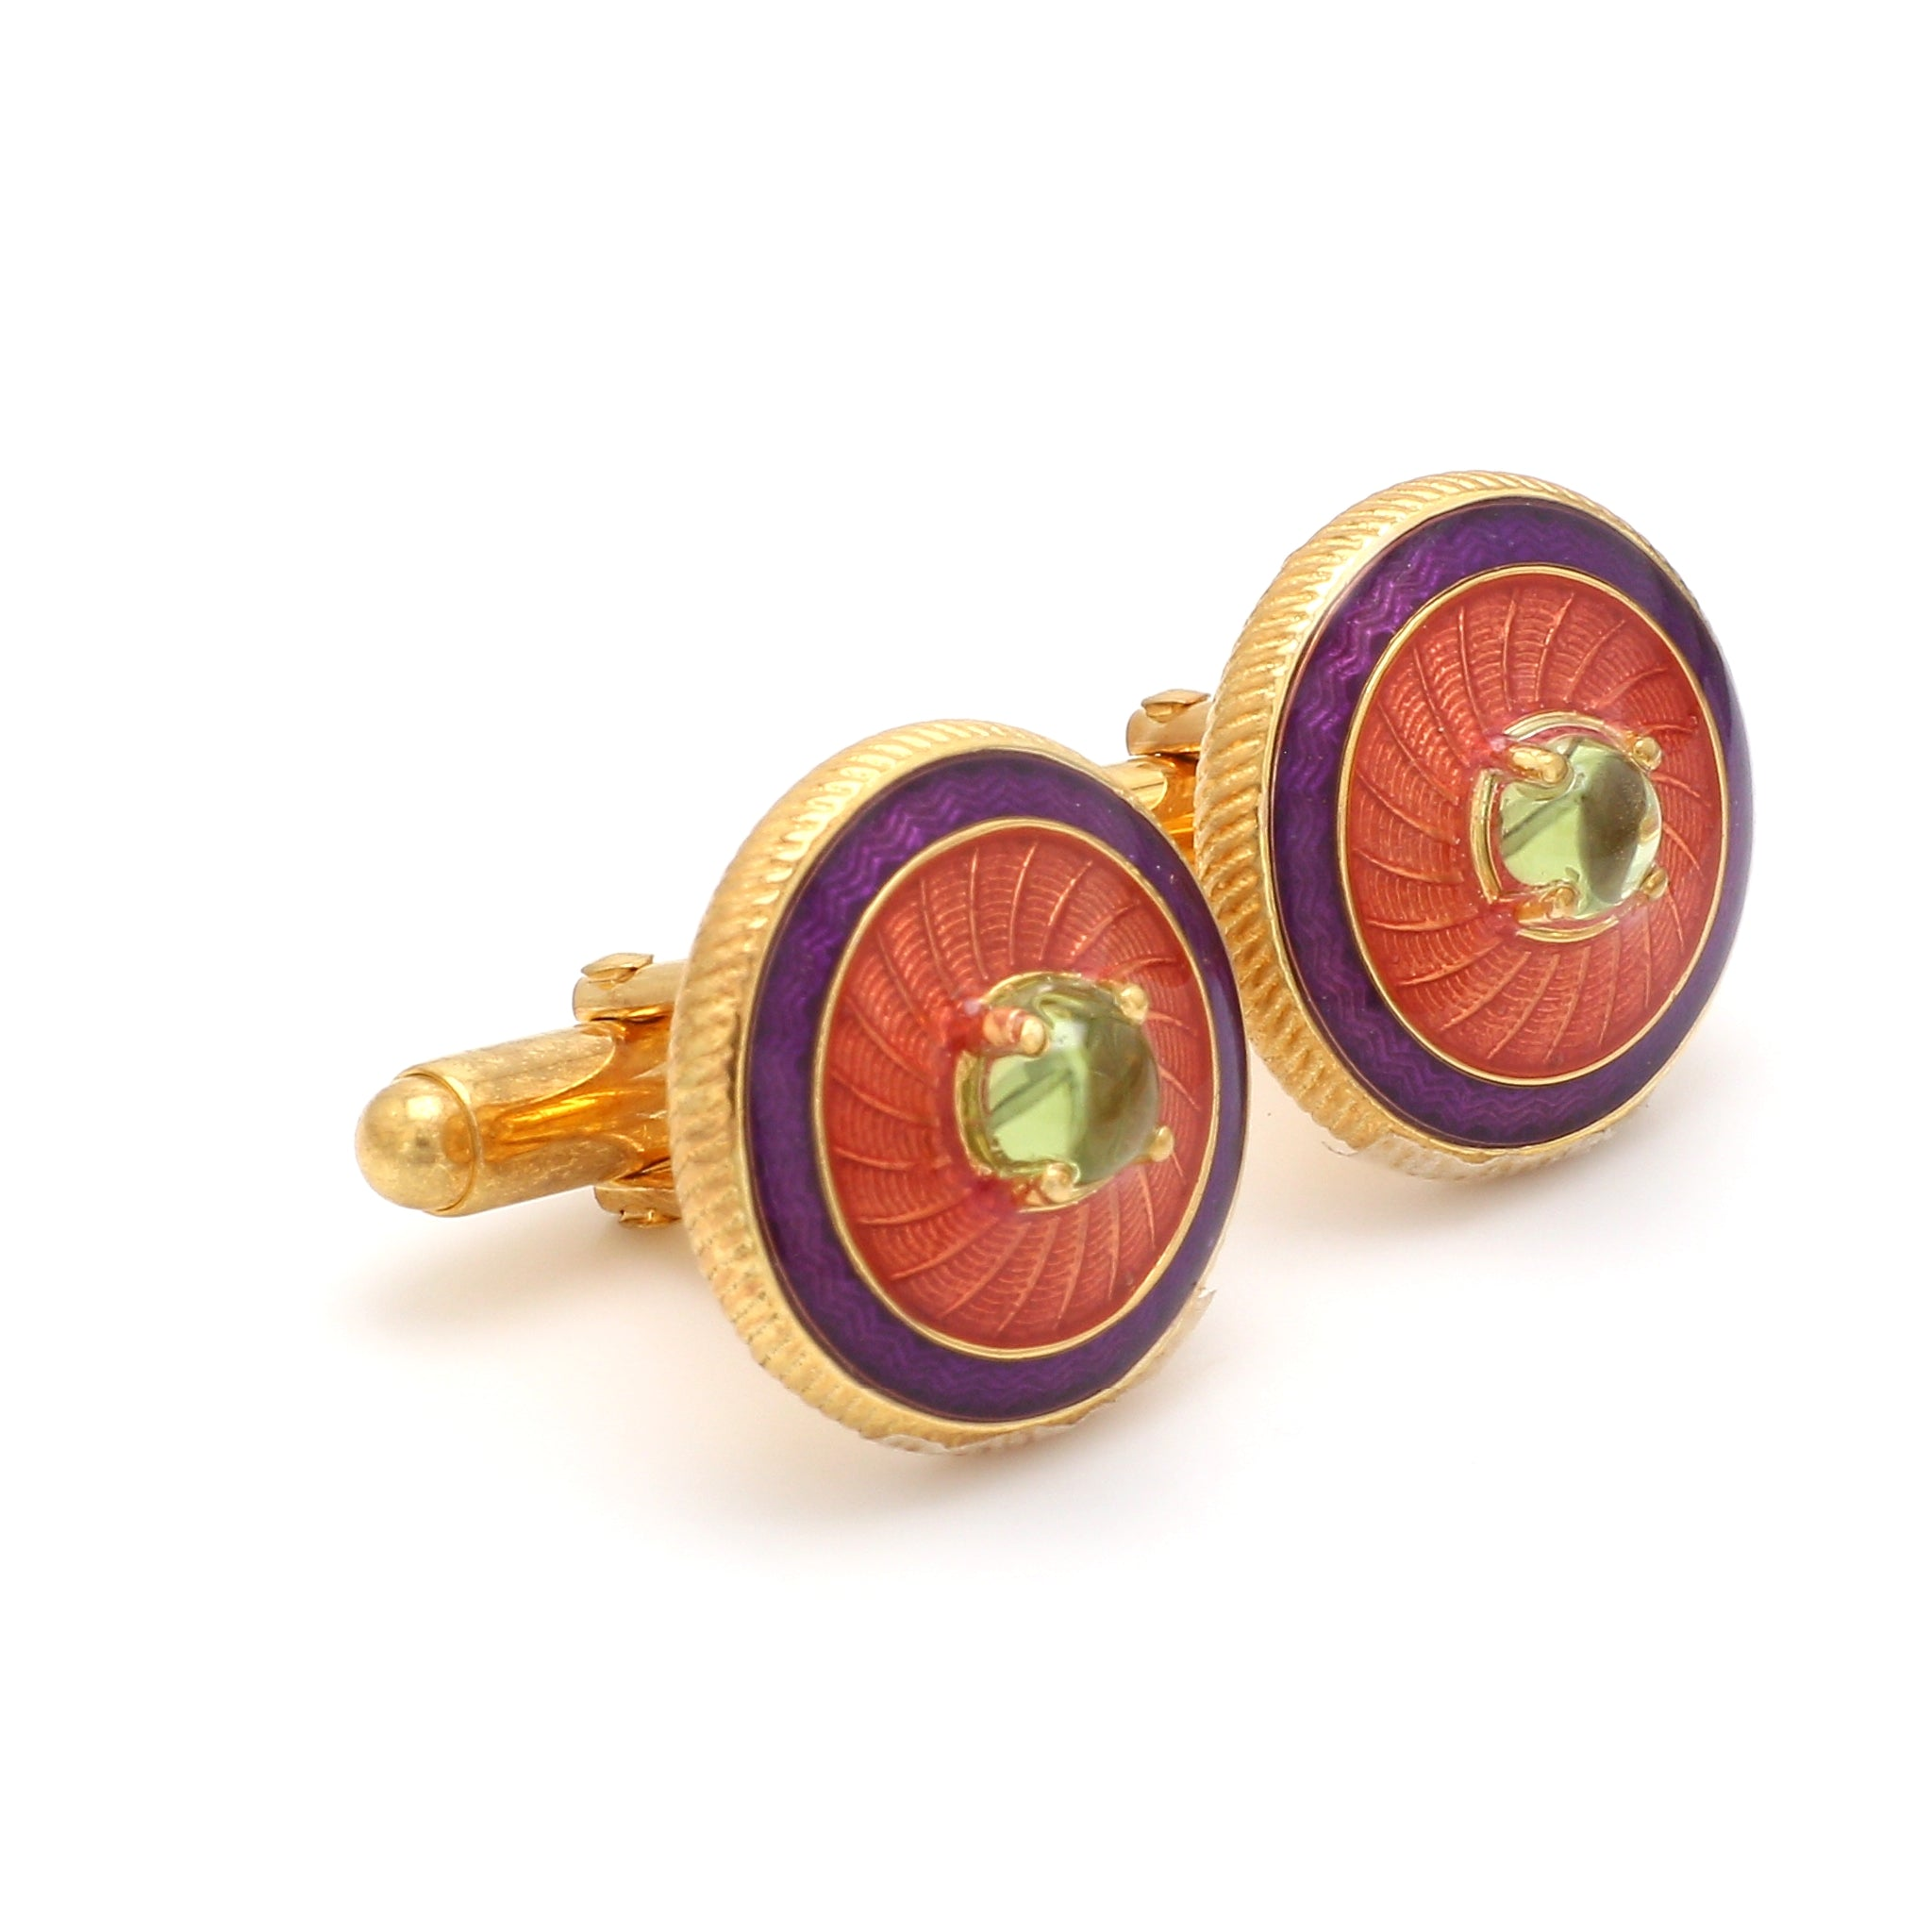 Side View of 925 Silver Cufflinks for Men with Yellow, Purple & Red Enamel JL AGC 31